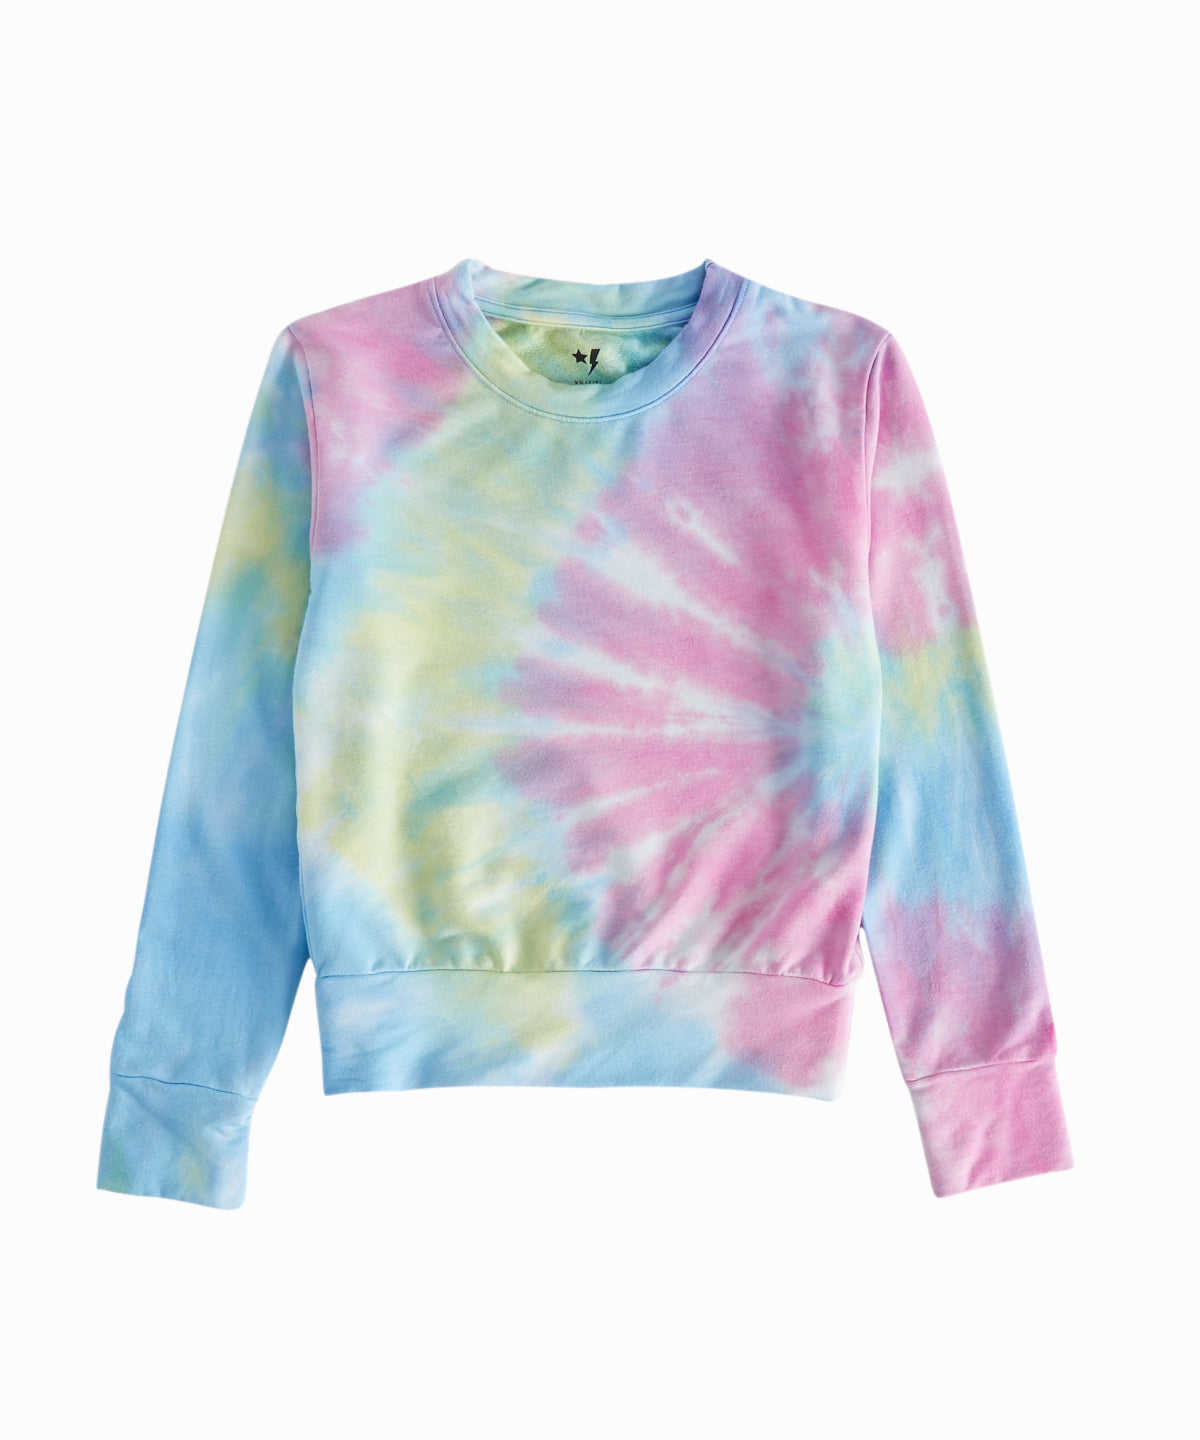 Multi-Color Tie Dye Crewneck Sweatshirt